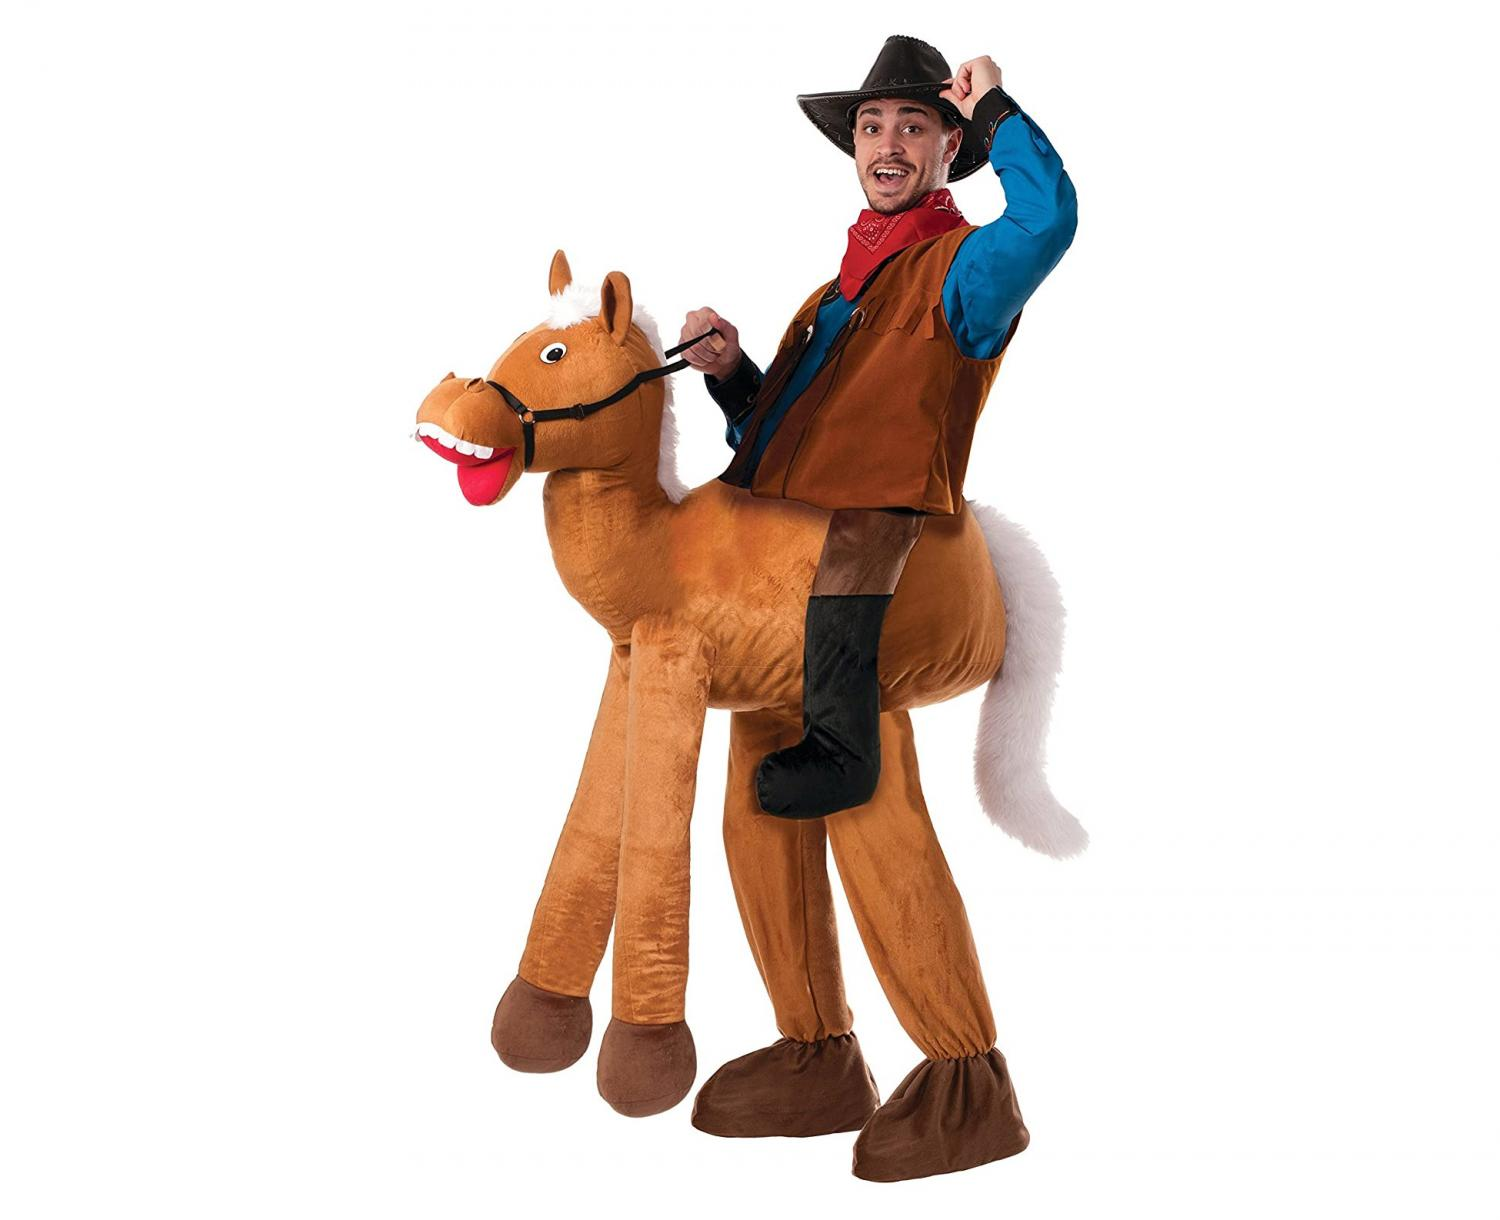 Ride-On Horse and Cowboy Costume